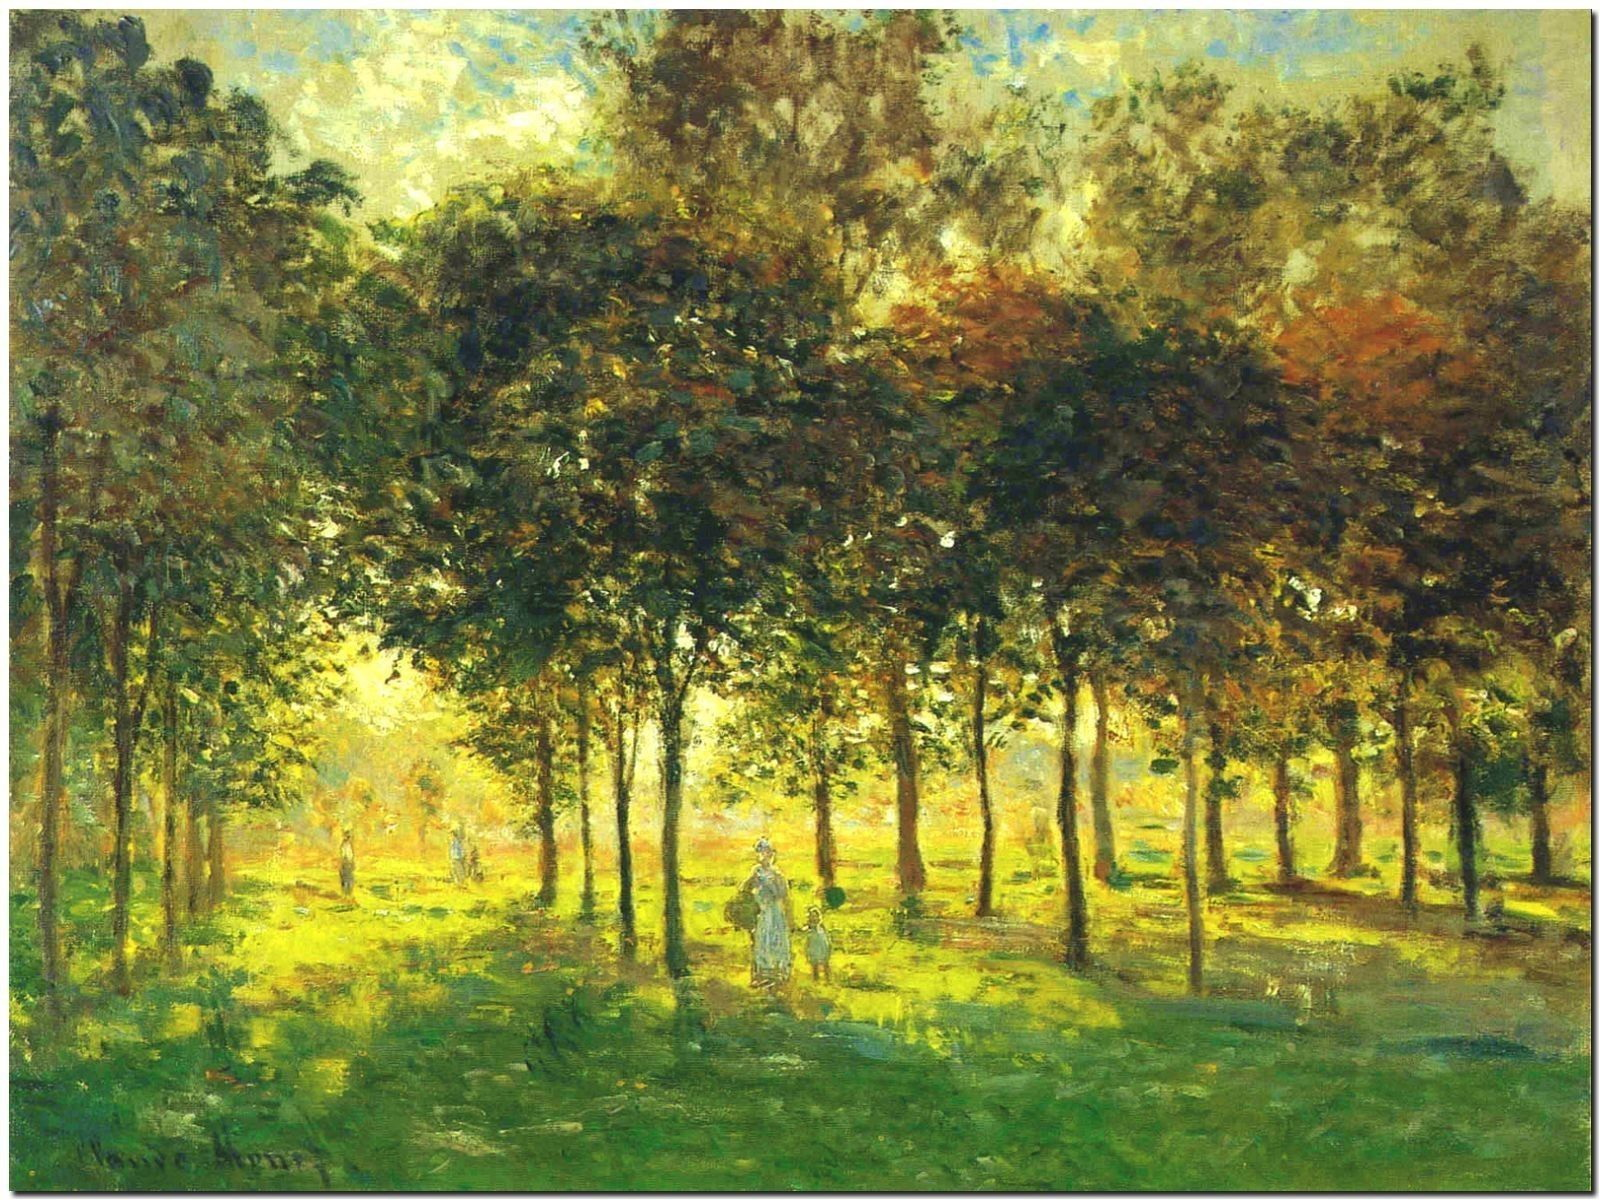 179119 CLAUDE CLAUDE CLAUDE MONET THE PROMENADE AT argentoEUIL DECOR WALL PRINT POSTER FR f6c747